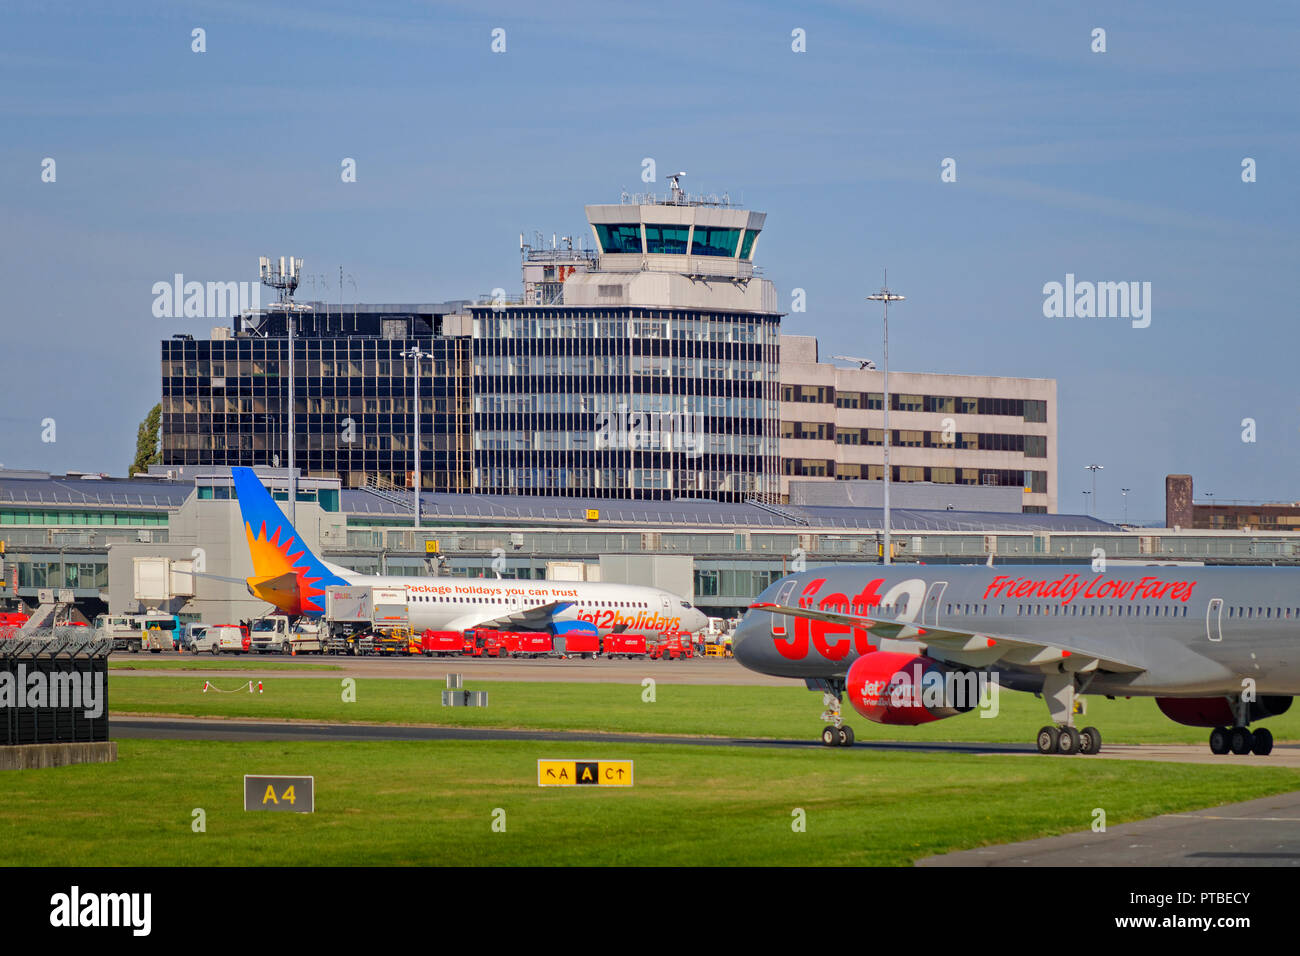 Uk England Manchester Manchester Airport Stock Photos Uk England